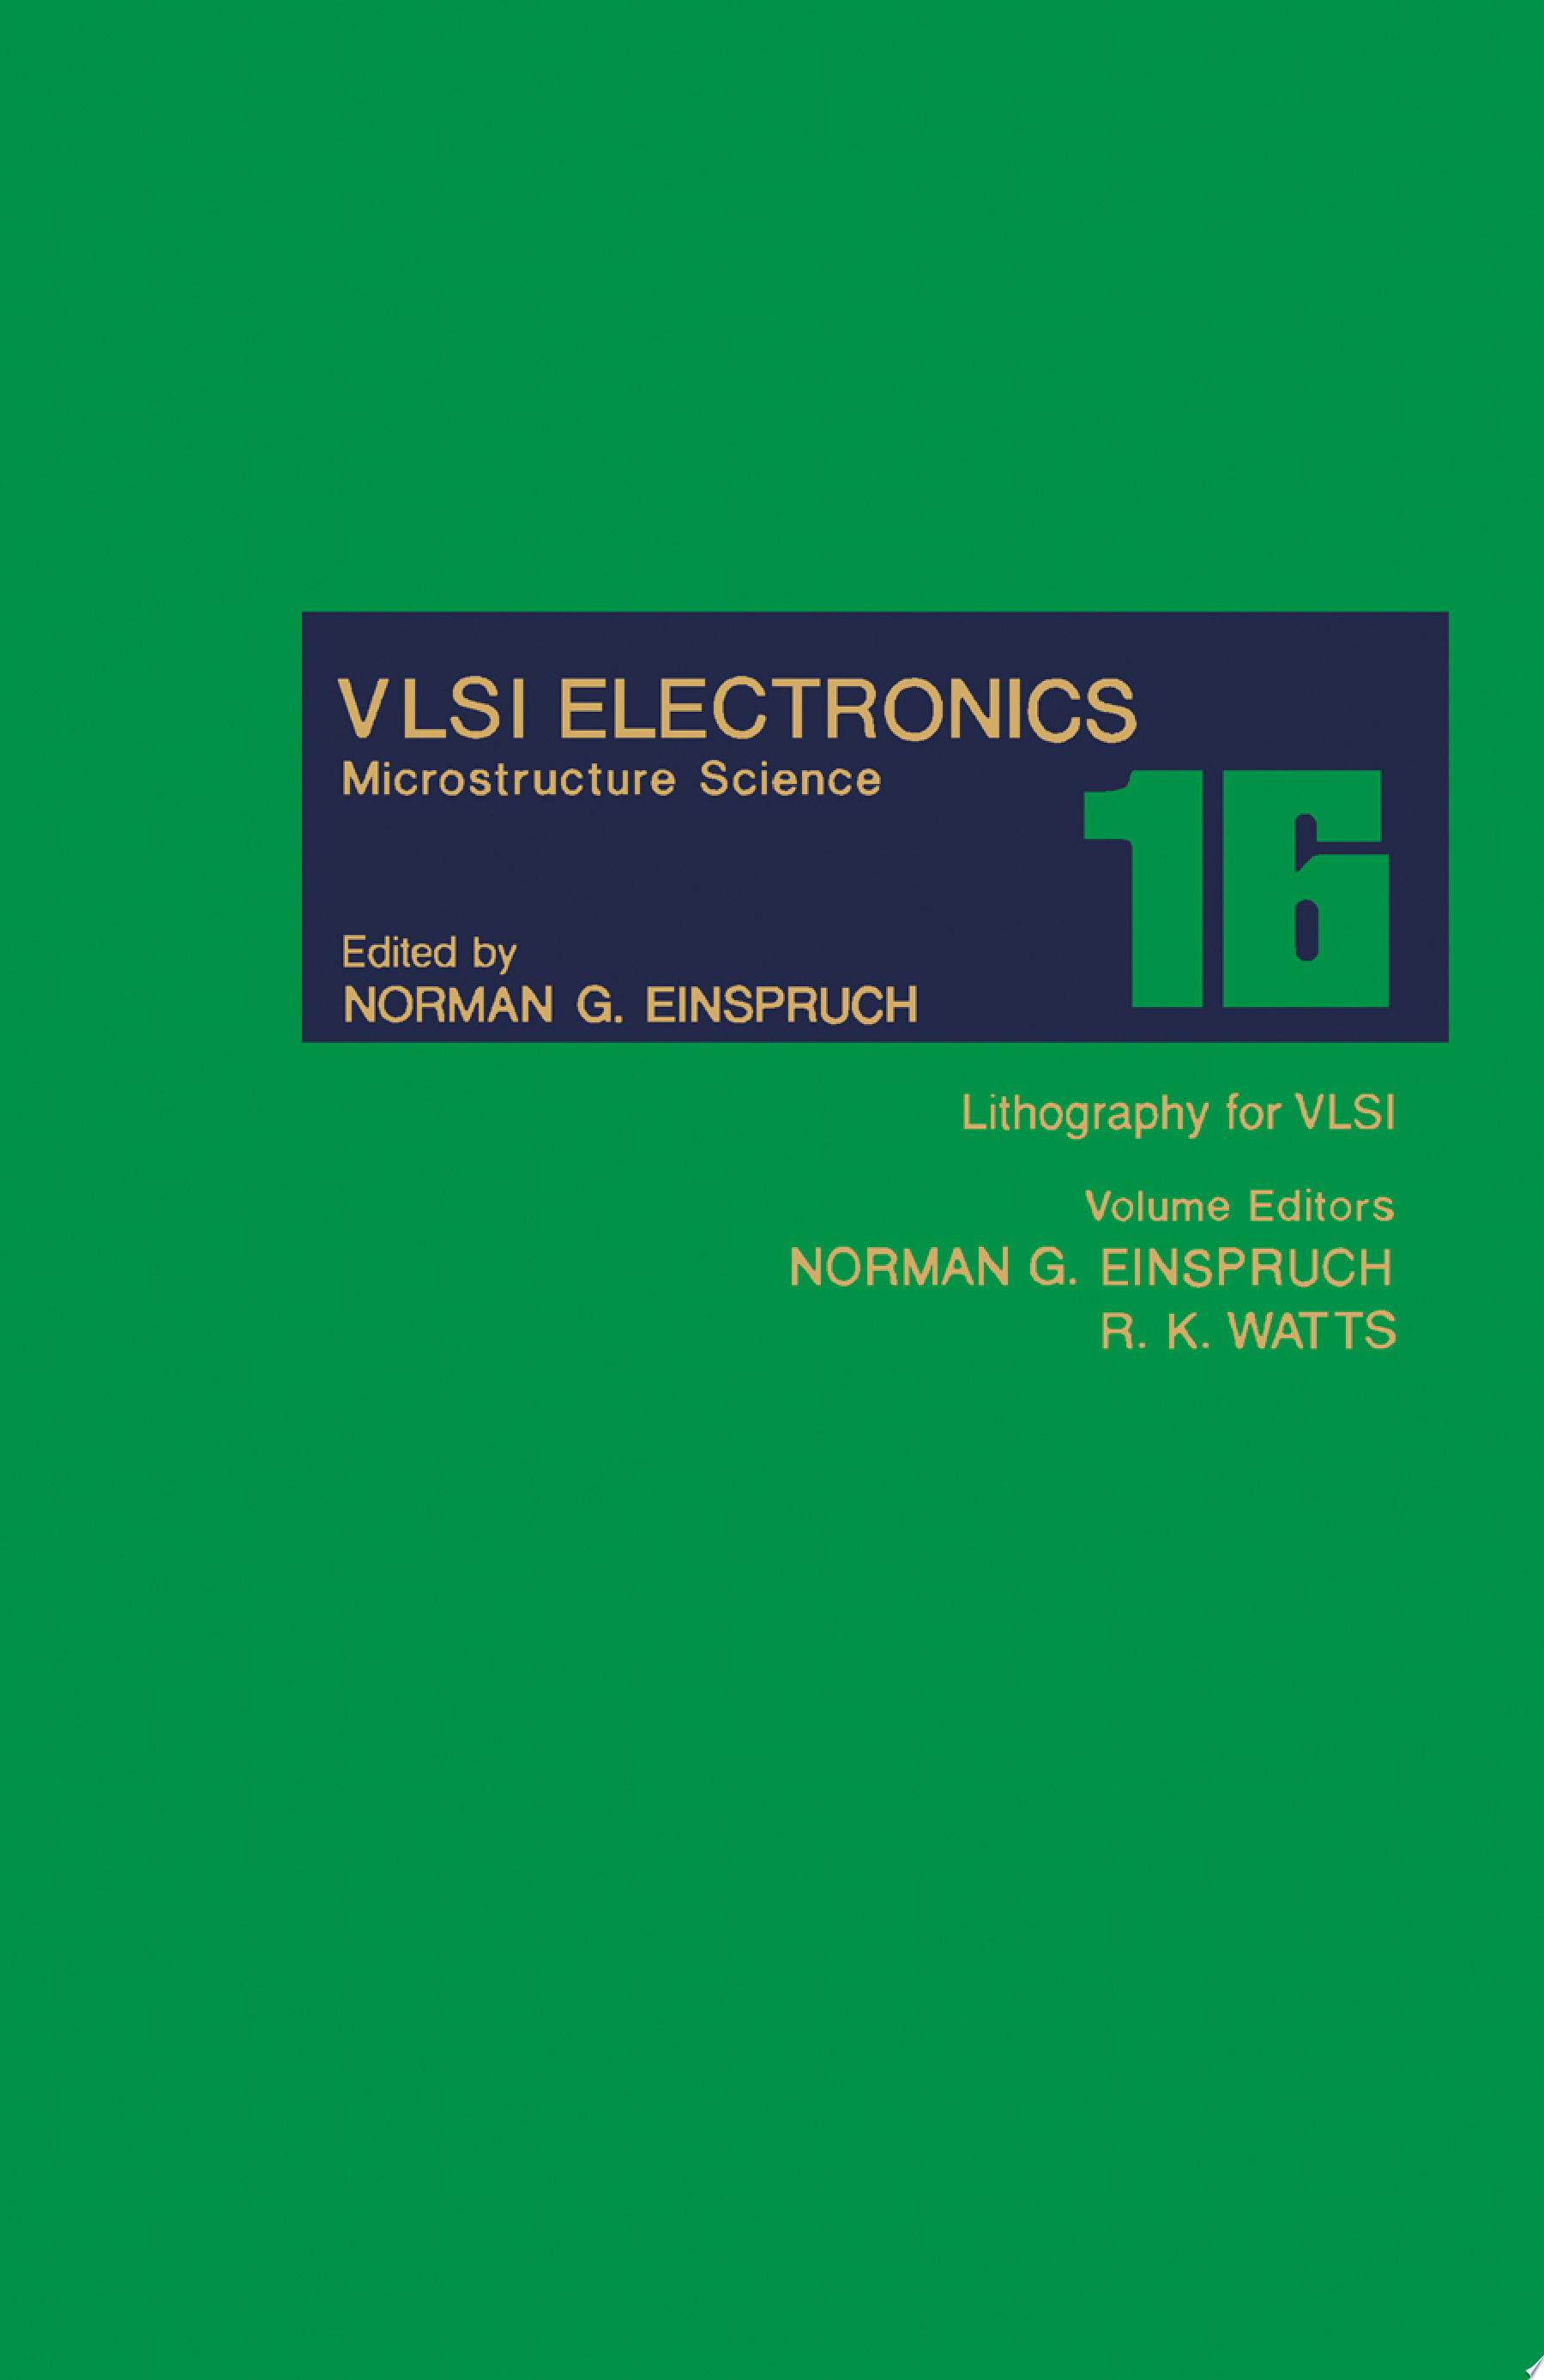 Lithography for VLSI